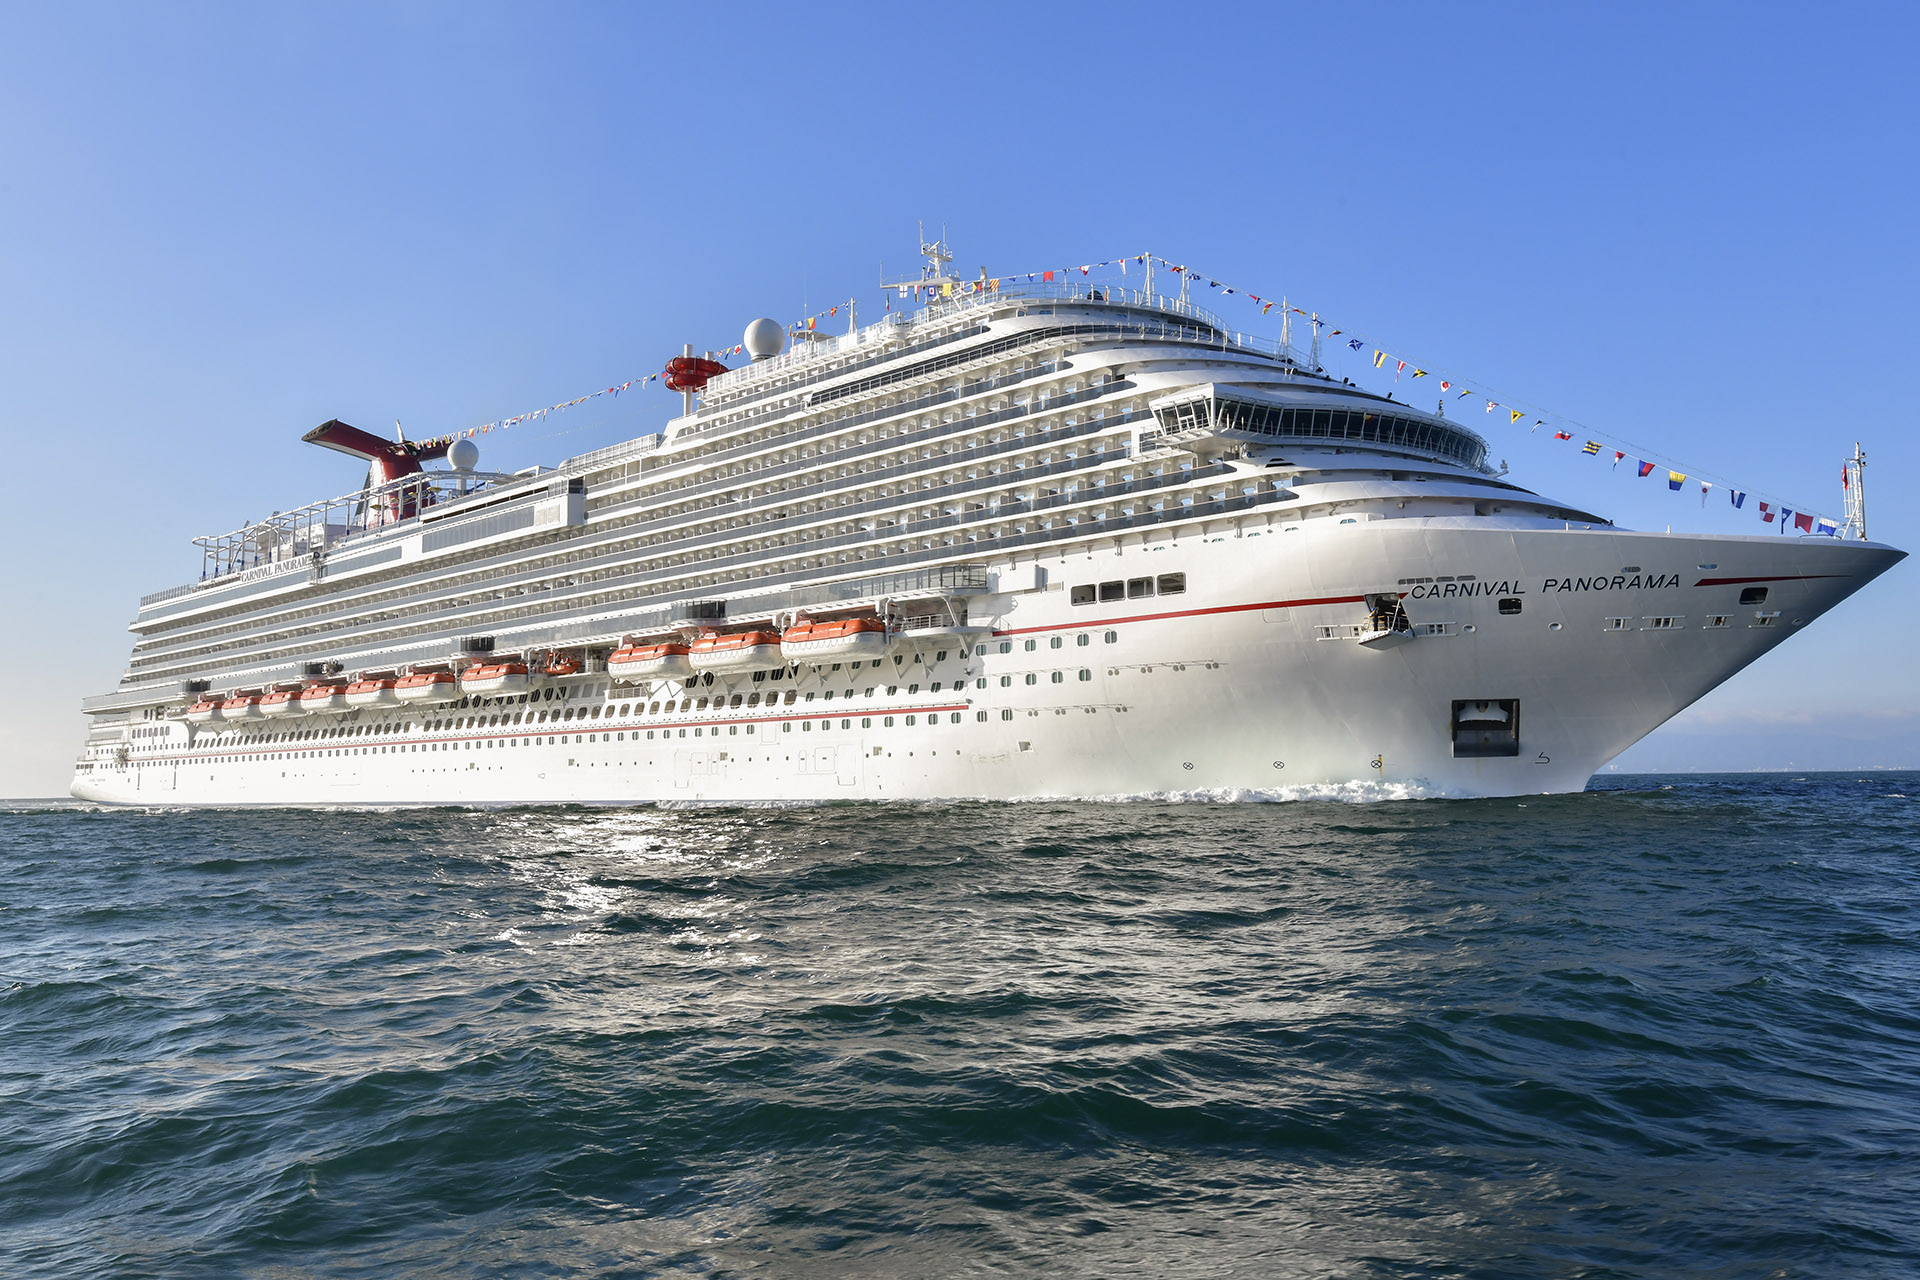 Carnival Panorama Makes Line's First Call to Cabo San Lucas, Mexico, Since Resuming Service